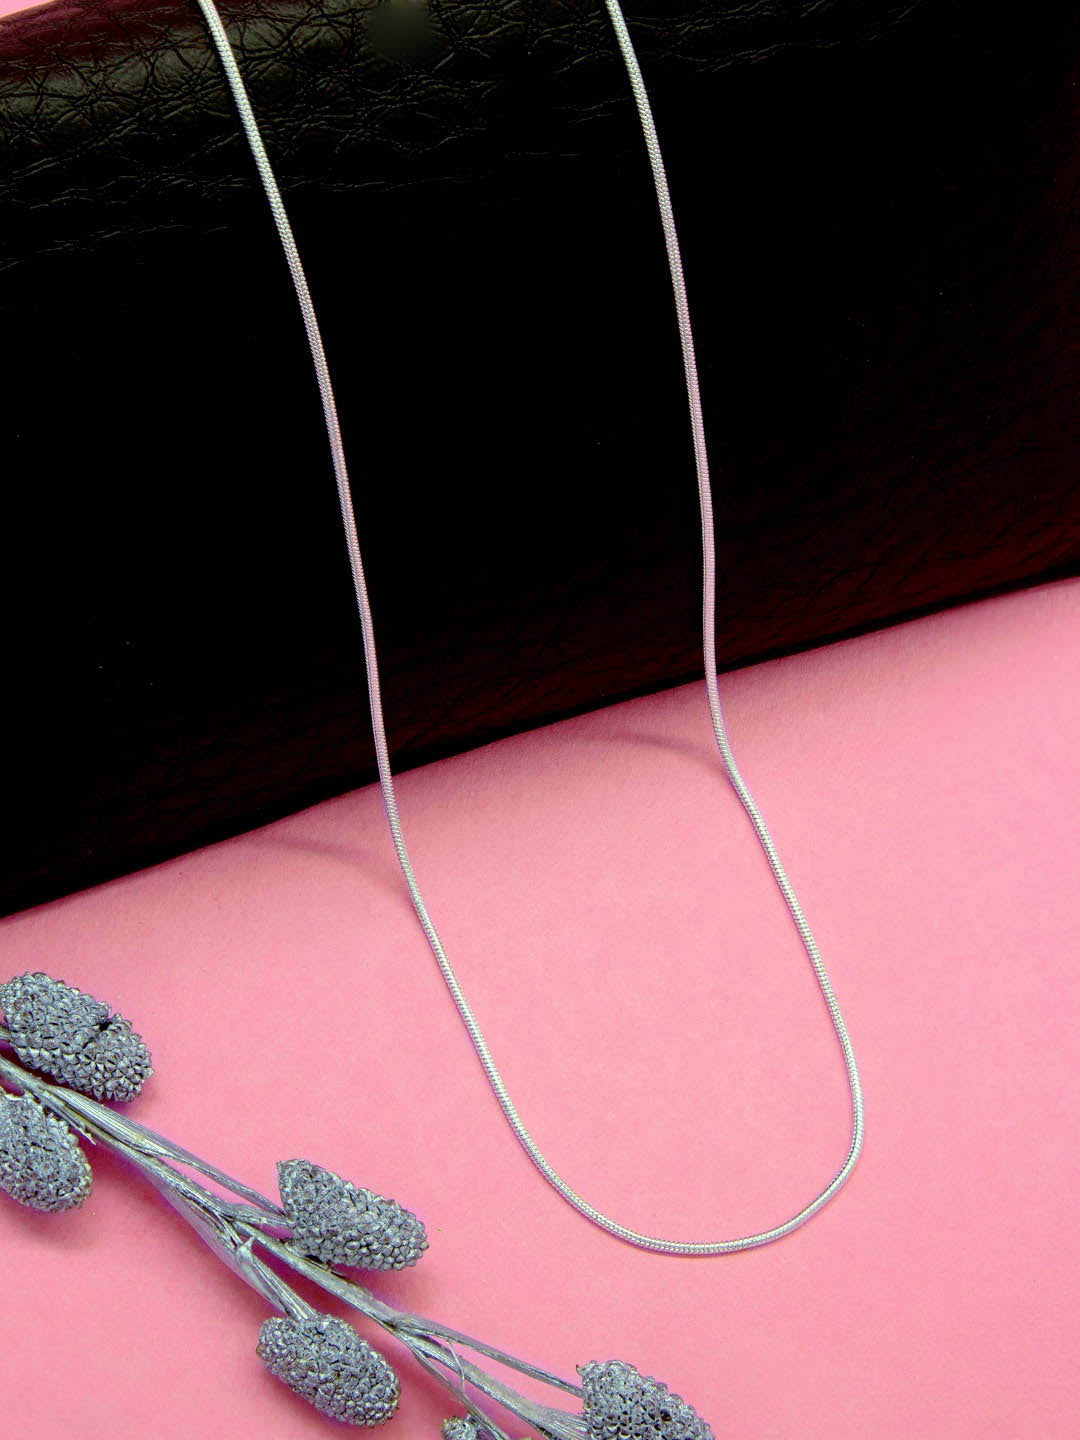 Silver Plated Geometric Design Long Necklace Chain By Aana-AANA-Necklace Chain